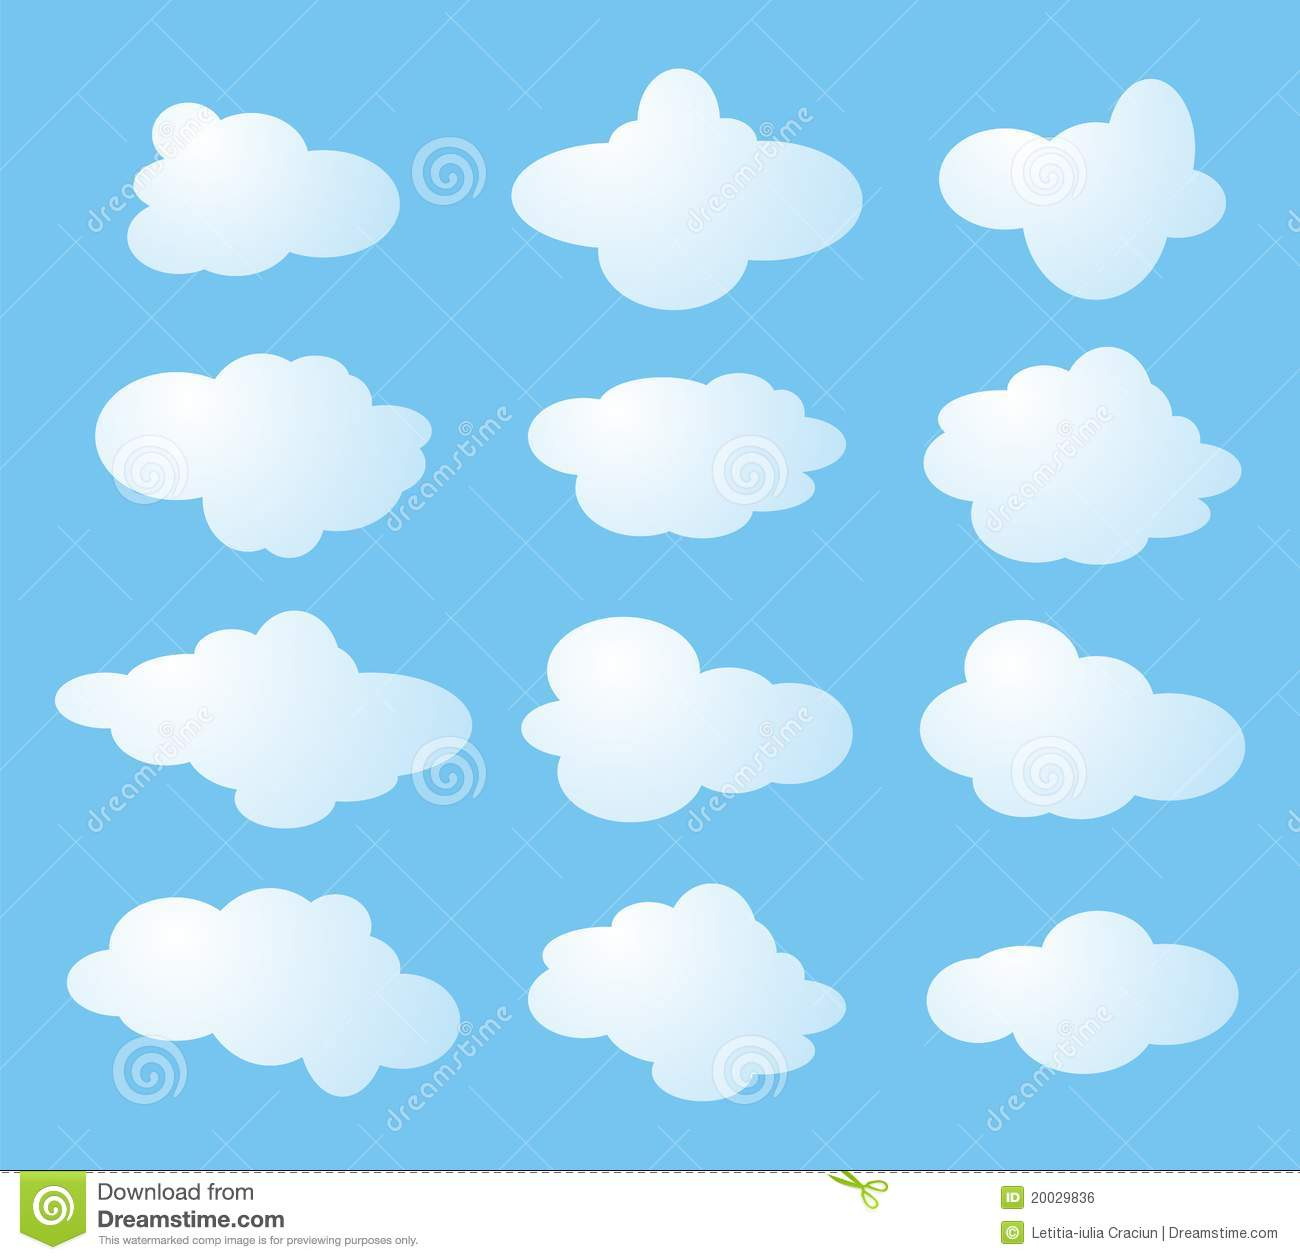 Twelve shapes of clouds